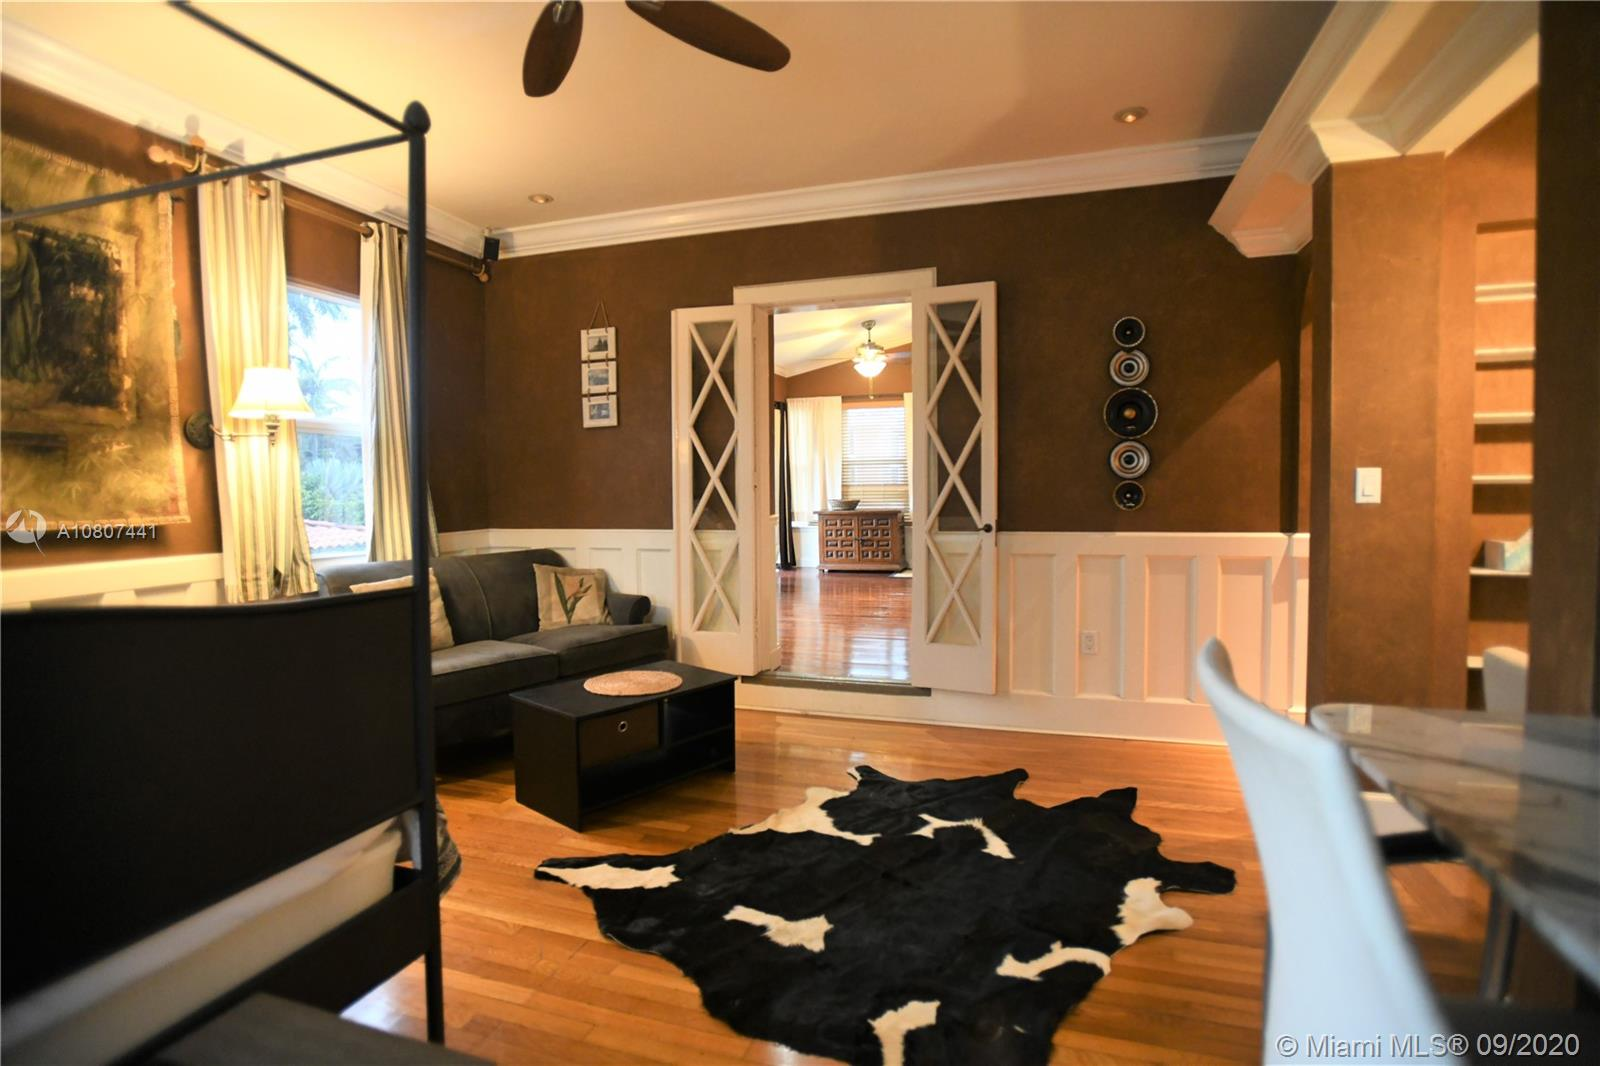 Upstairs master bedroom with vanity seating and great architectural details